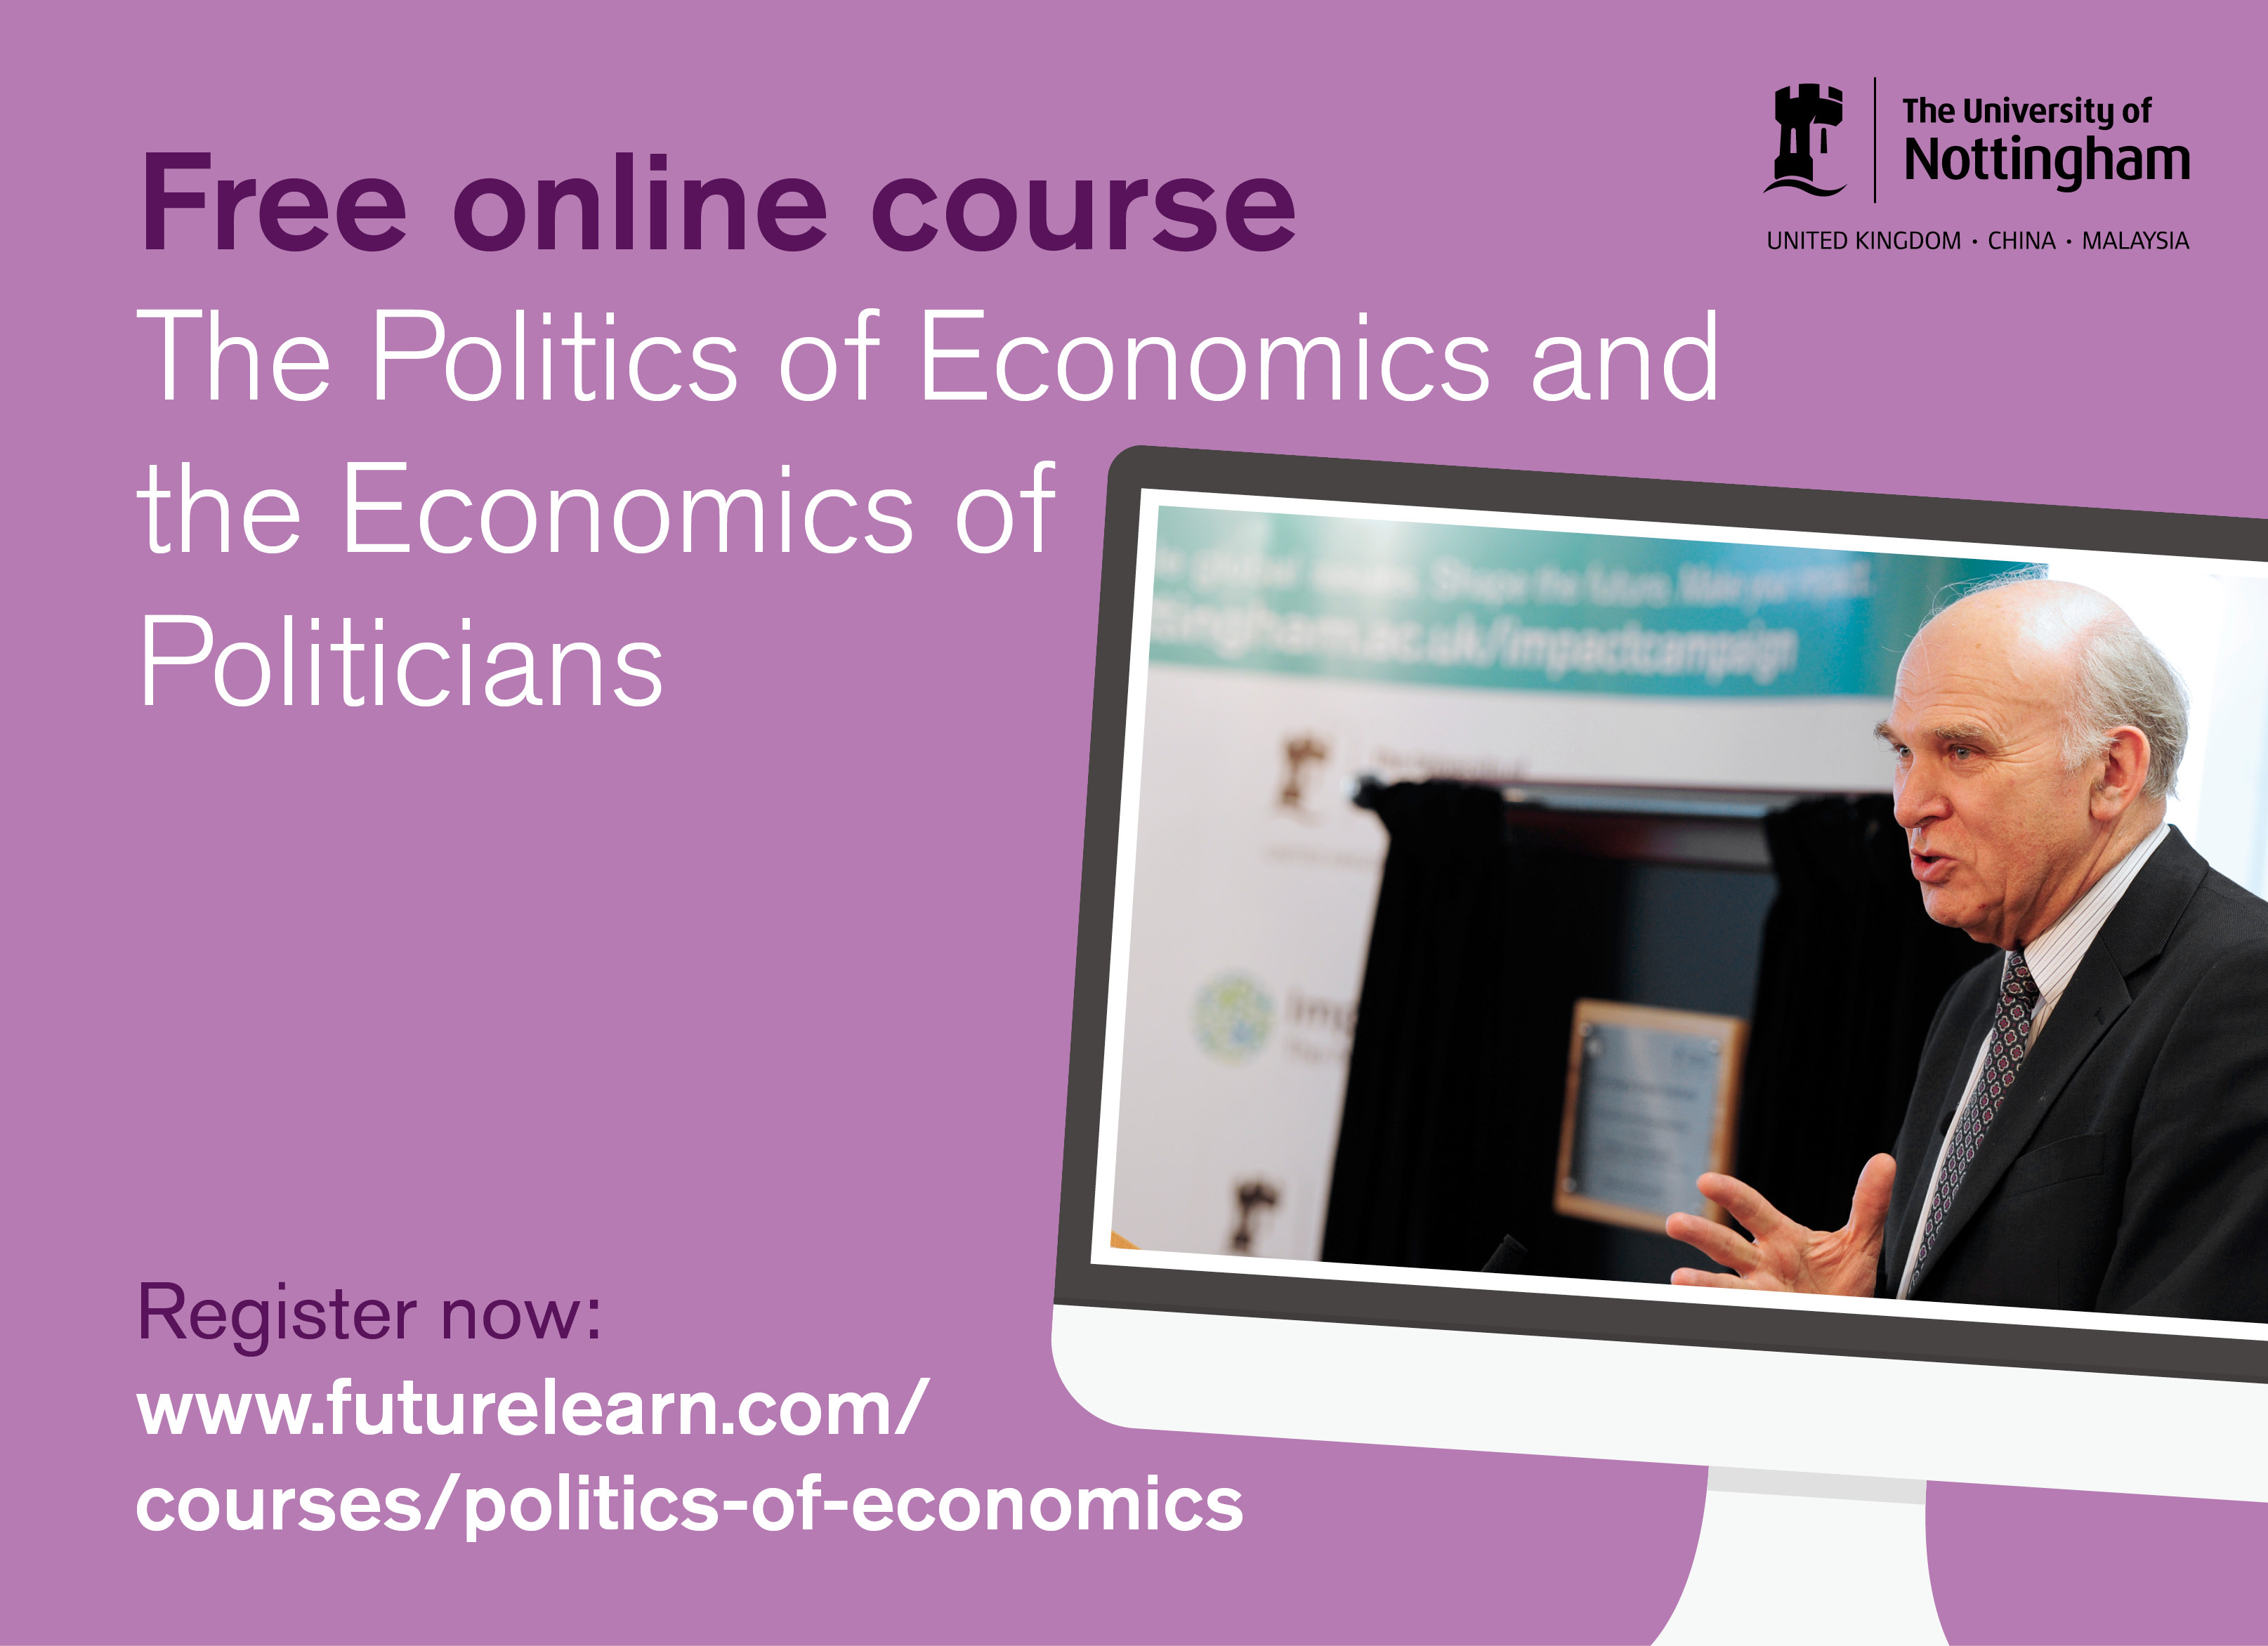 economics coursework online Economics coursework and long-term behavior and experiences of college graduates in labor markets and personal finance.